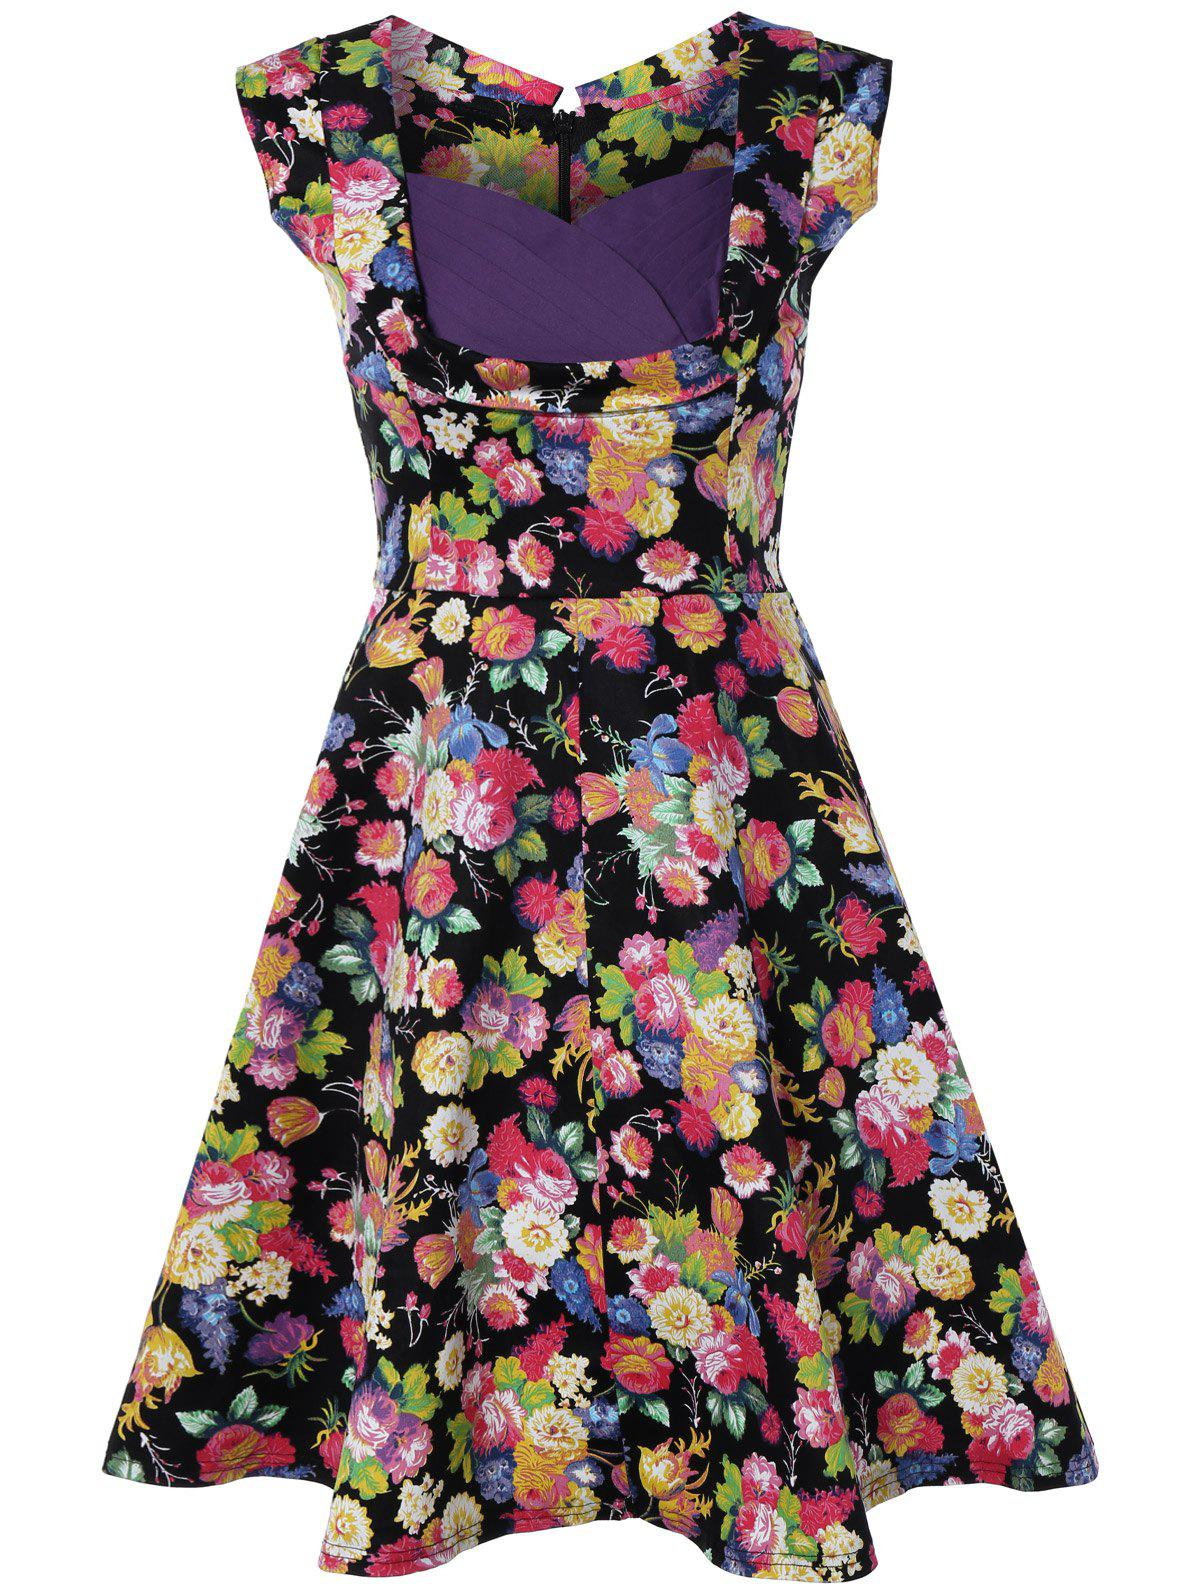 Retro Style High-Waisted Floral Print Dress - BLACK 2XL